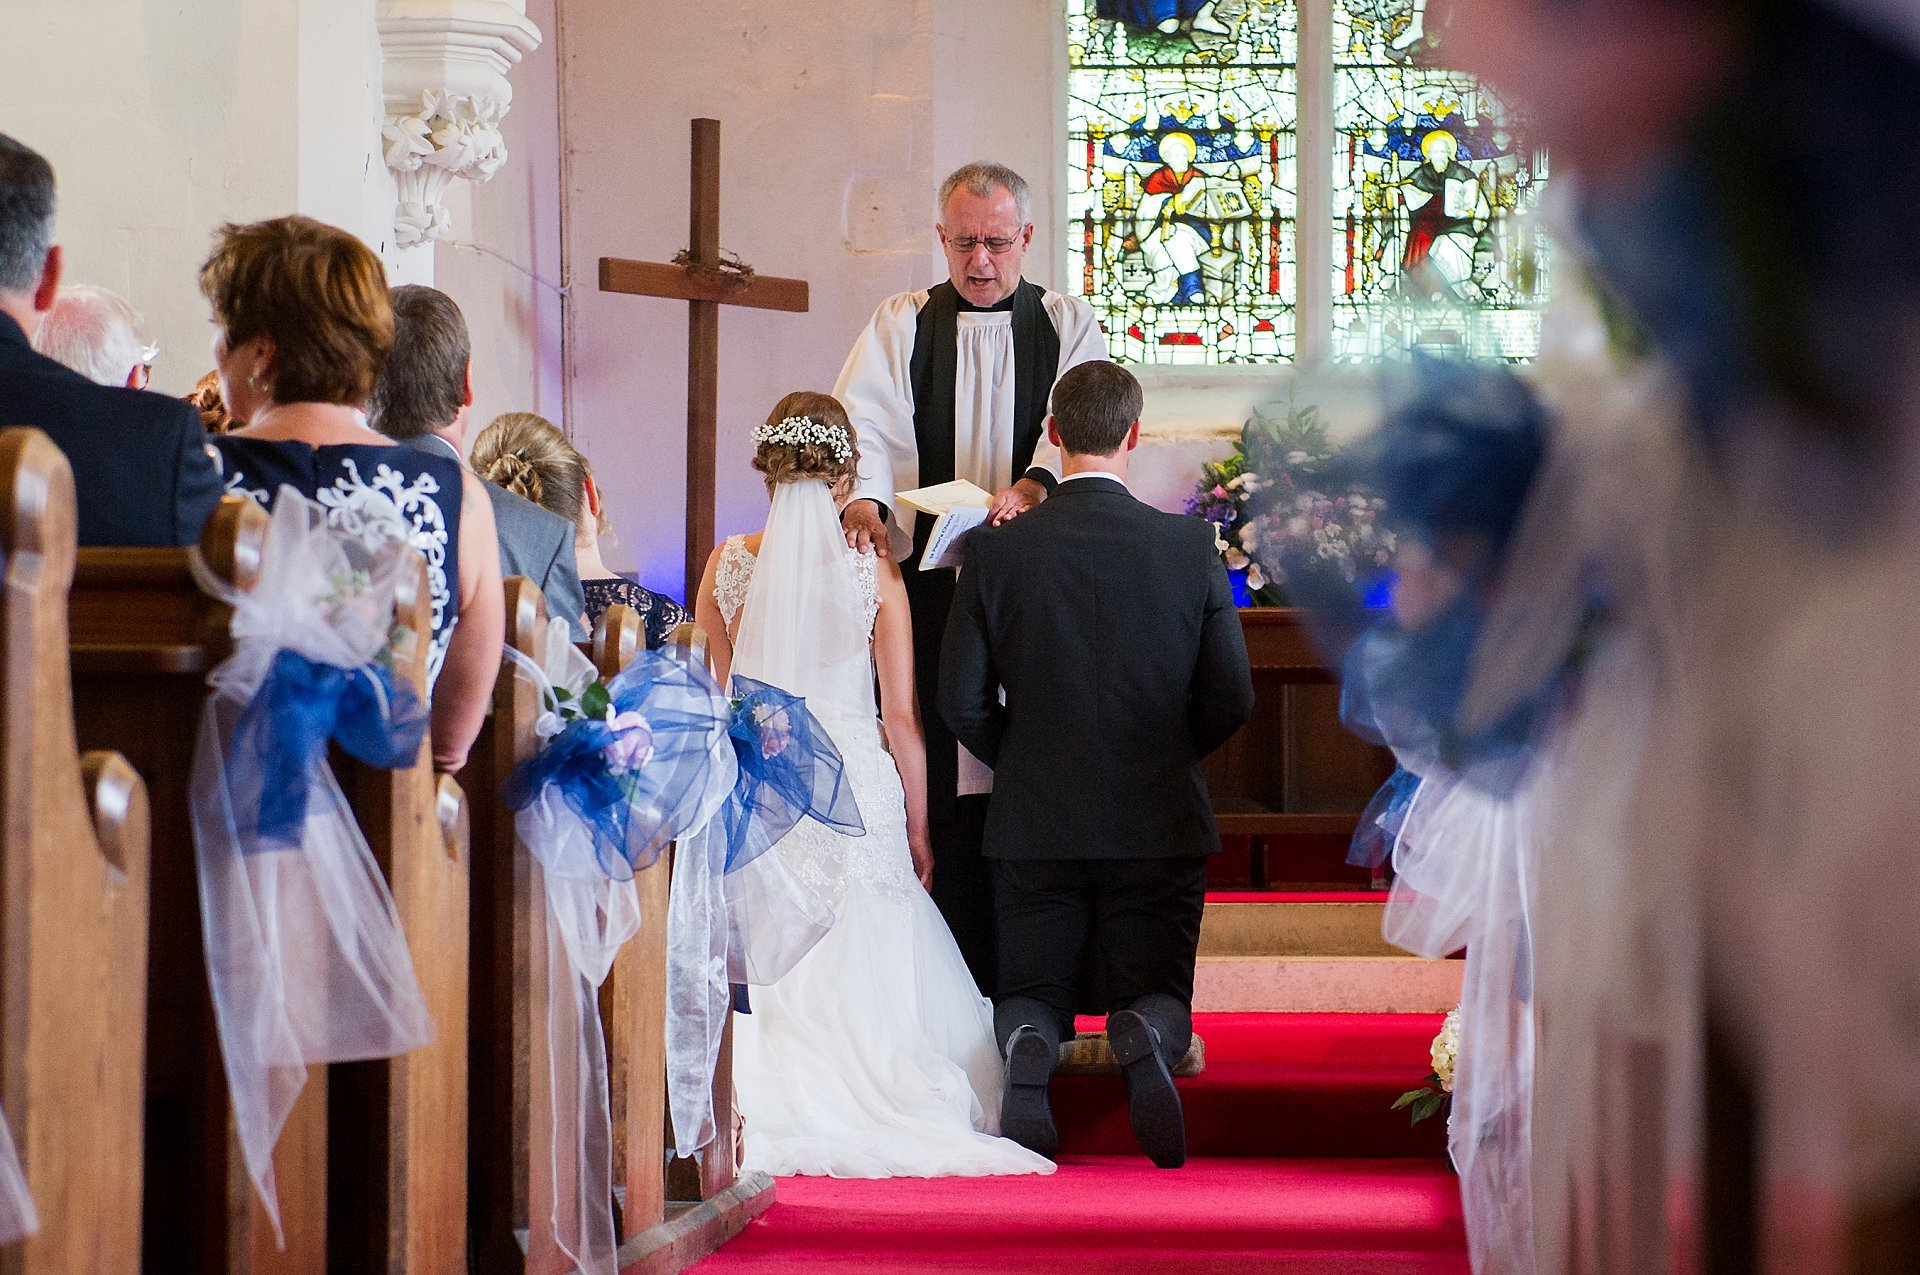 The blessing of the couple's marriage takes place inside St Peter's Ditton